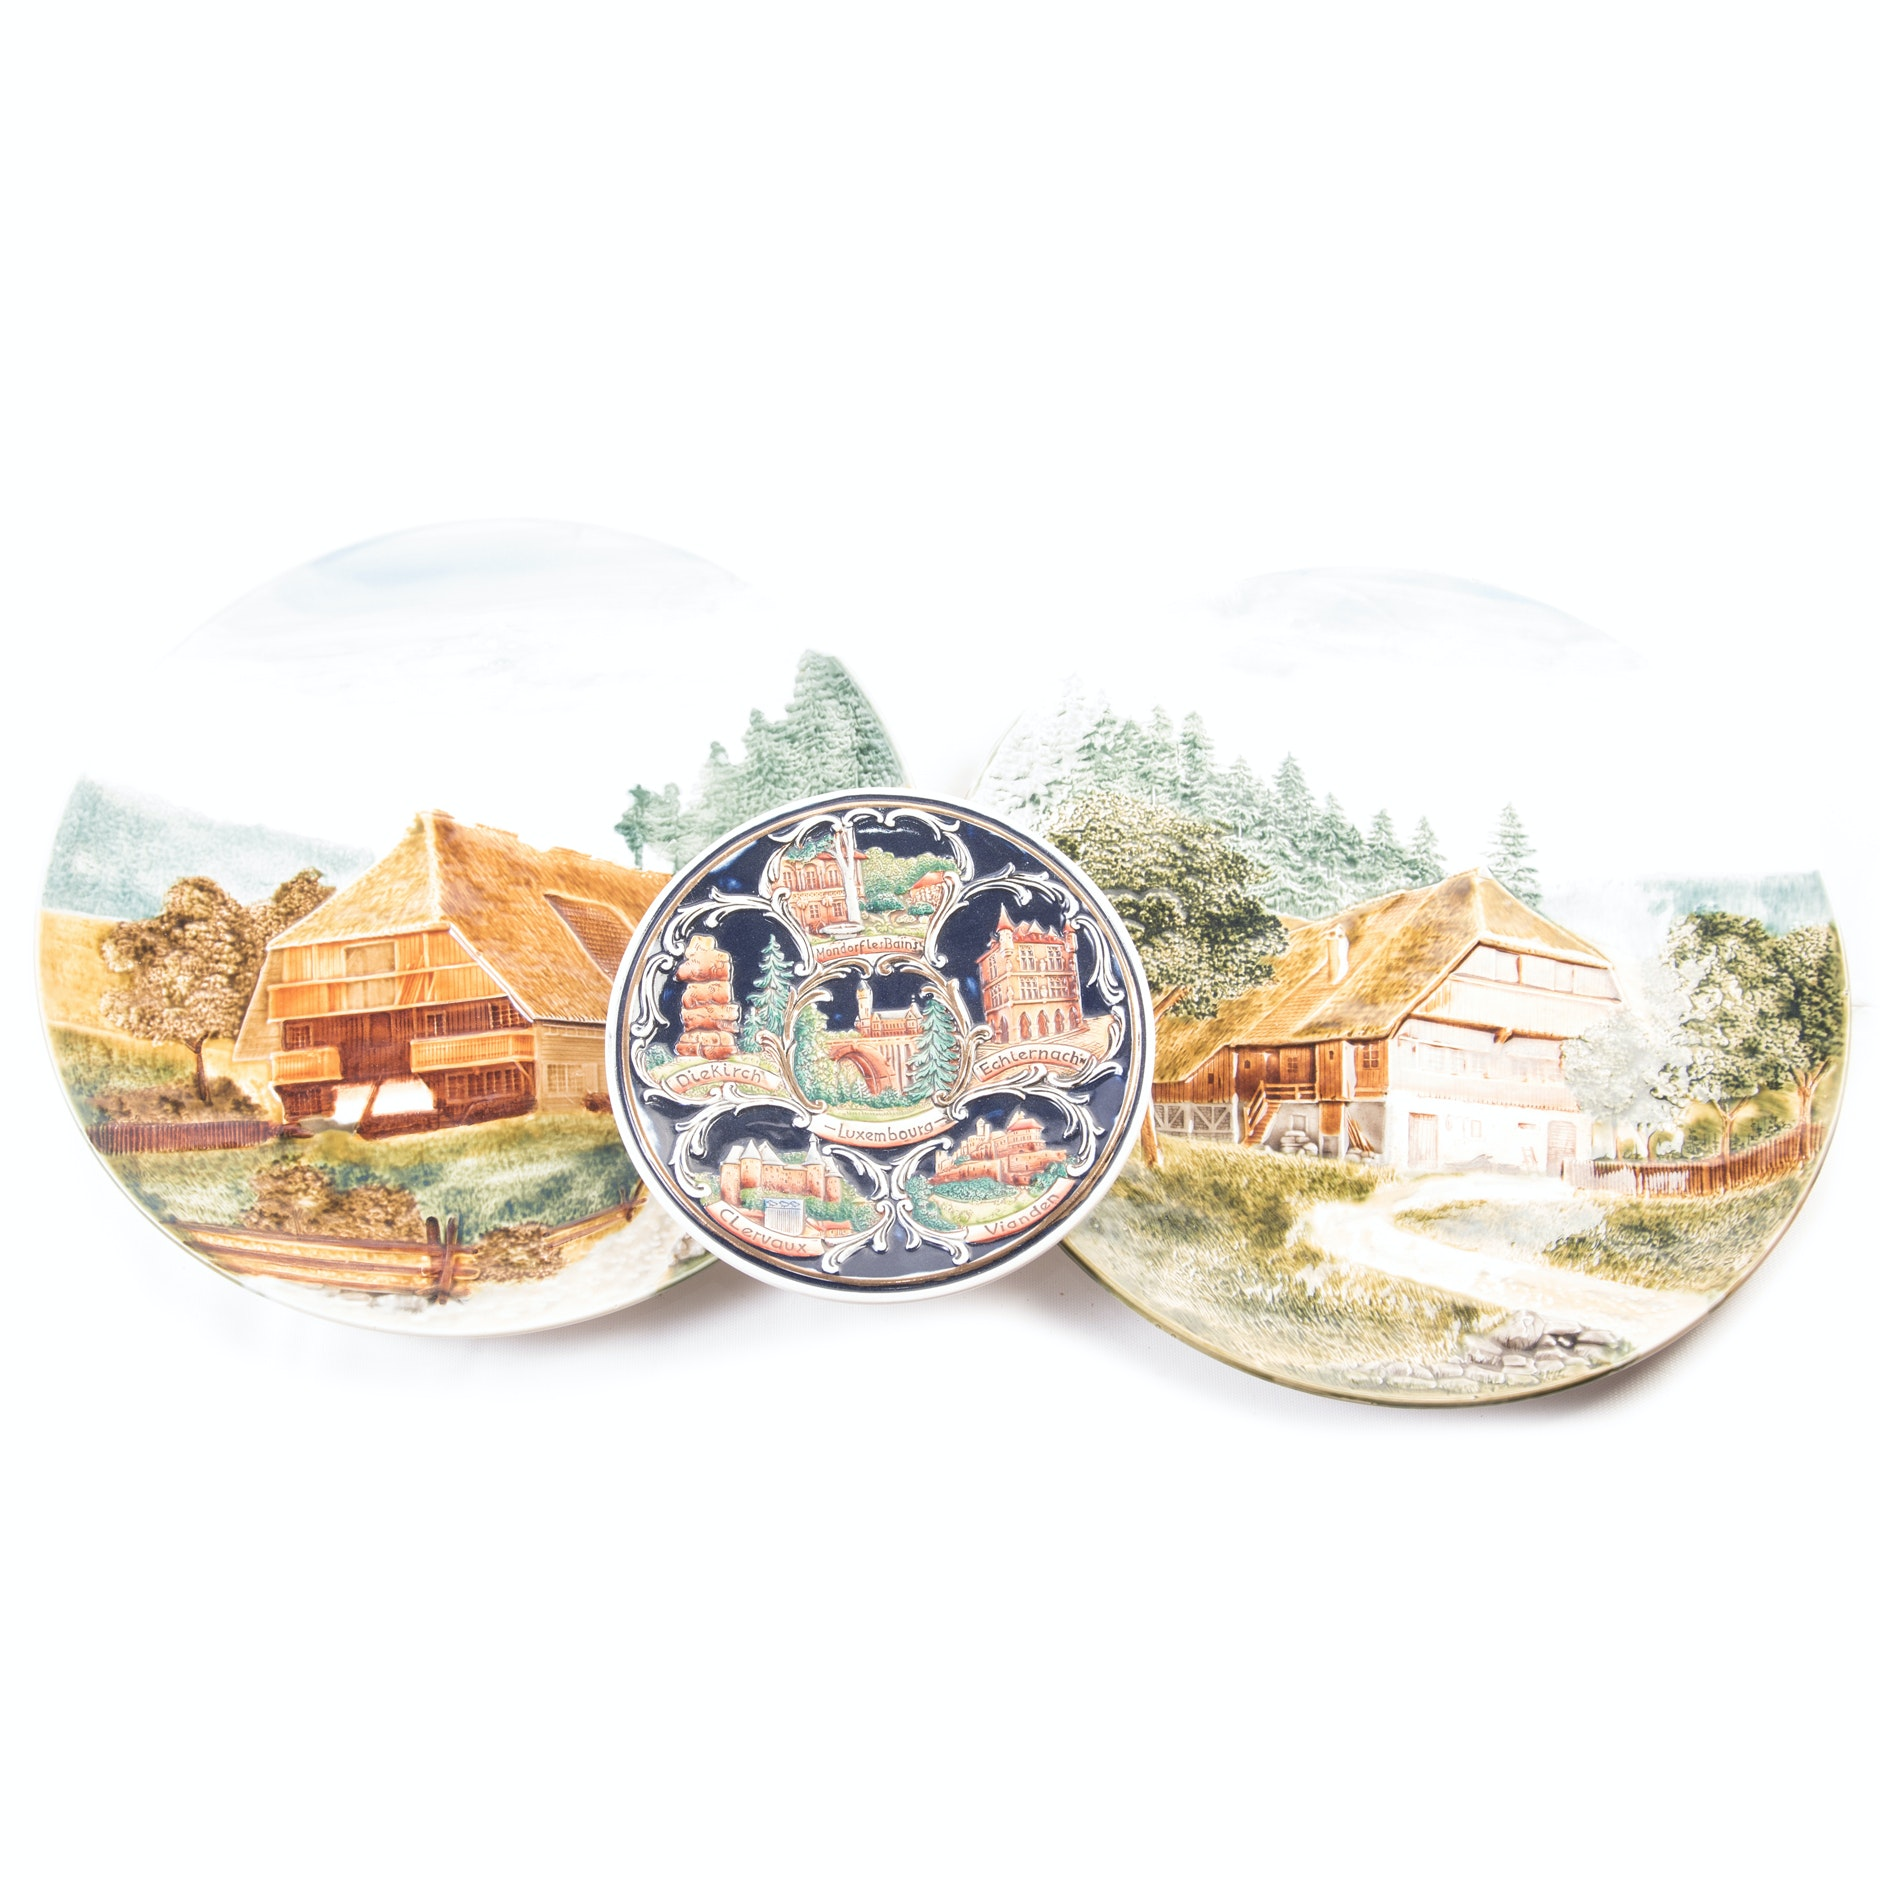 German Decorative Plate Collection